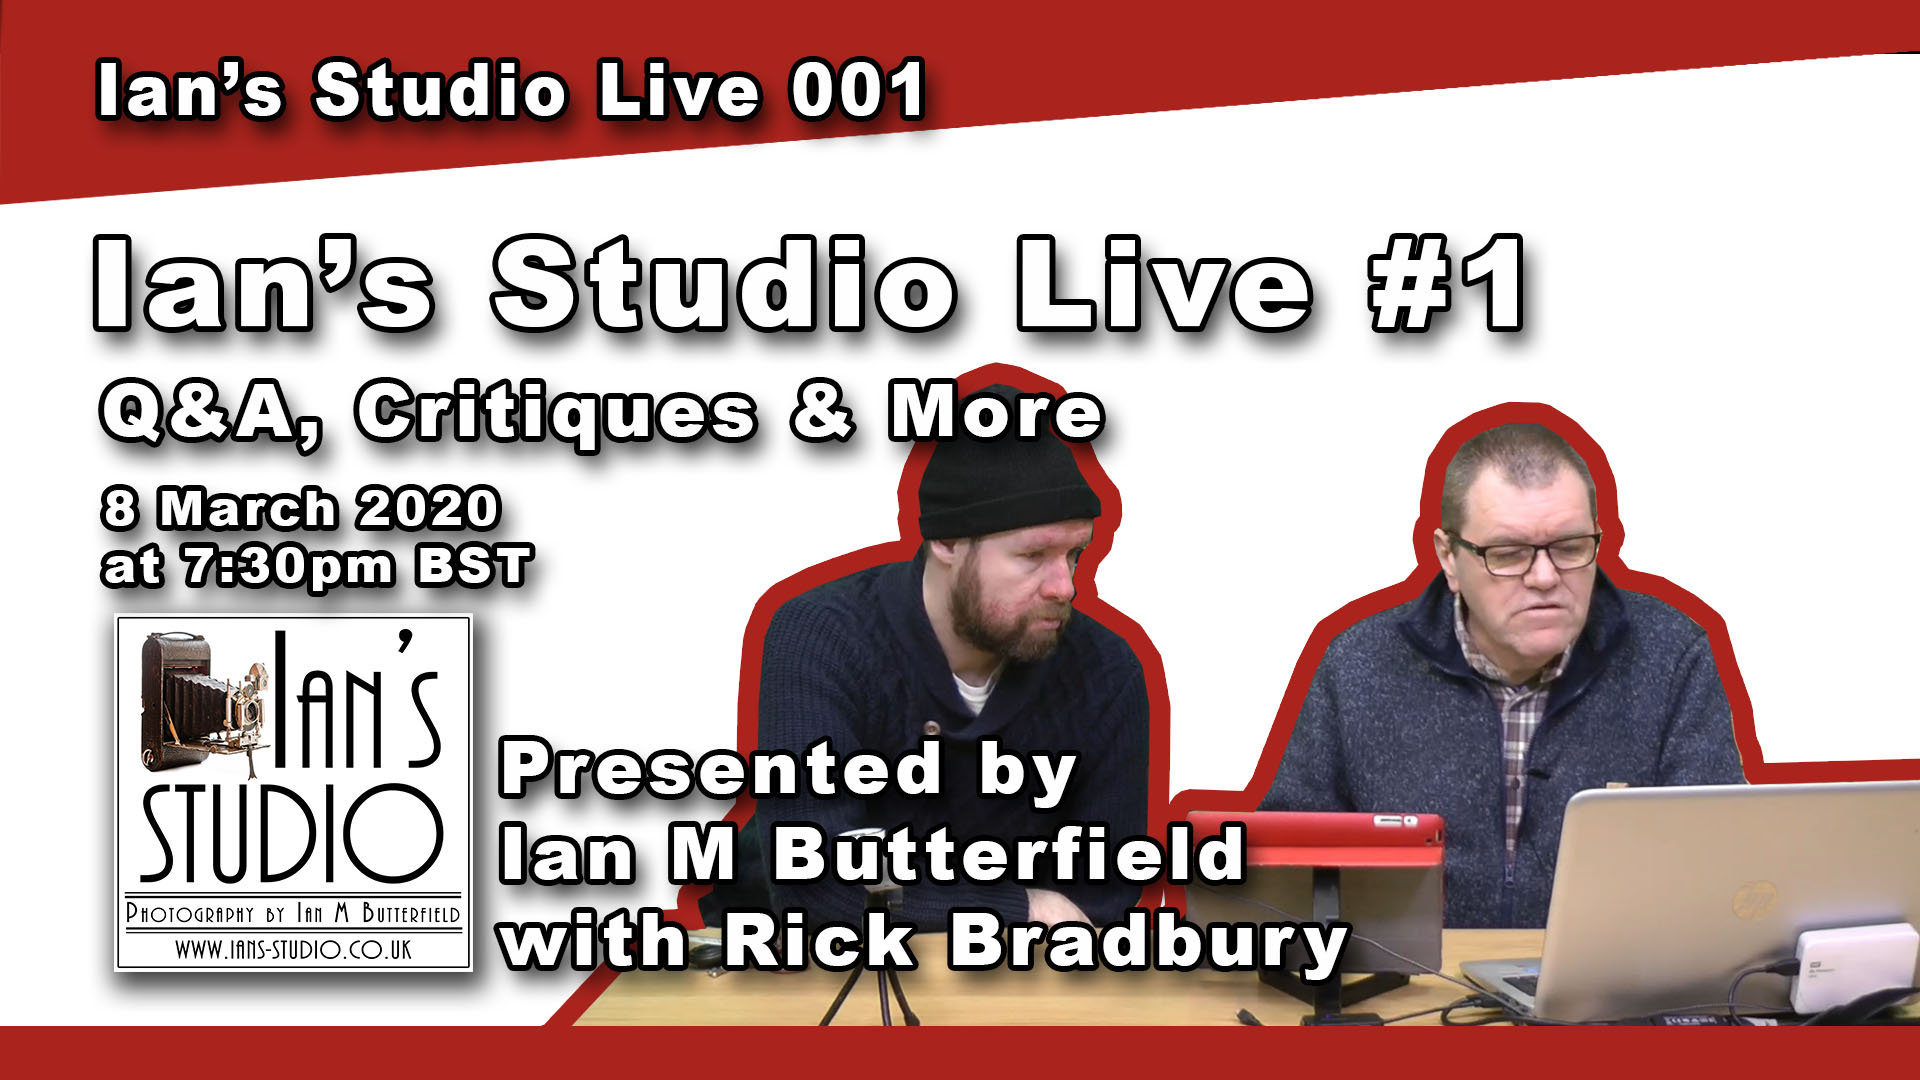 6 Mar 2020 NEWS: Ian's Studio Live! (Sunday at 7:30pm)